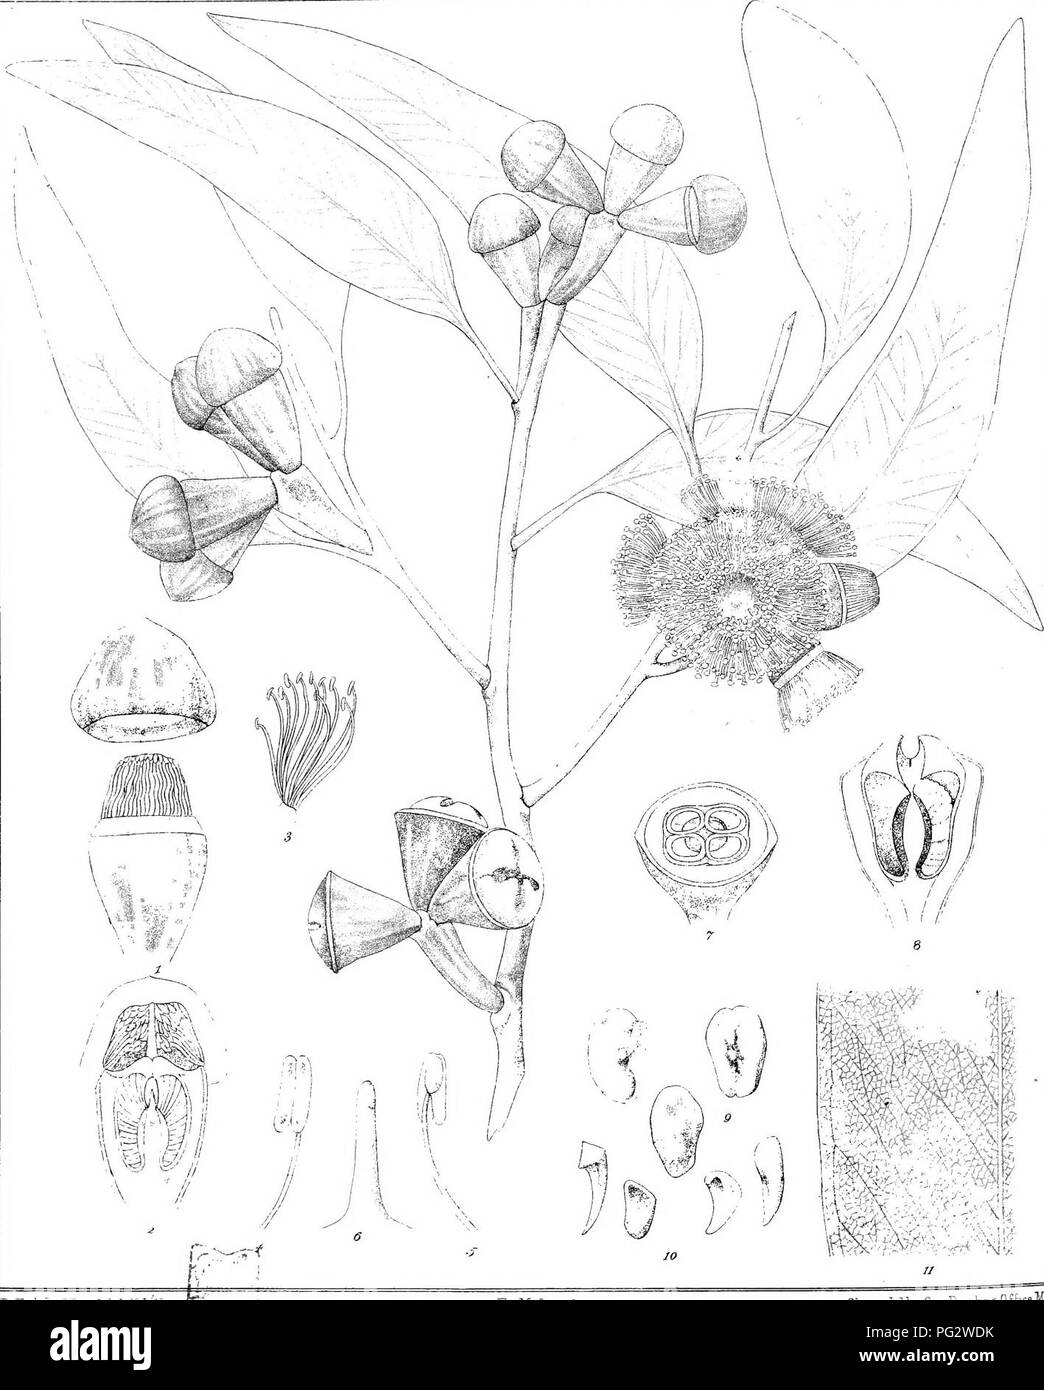 """. Eucalyptographia. A descriptive atlas of the eucalypts of Australia and the adjoining islands;. Eucalyptus; Botany. baide"""". CTroecl6:''.C':U'J, F.T.M dirtici Steam lilluD GoTPiinbiig Office Mali ^HSiil^^iiig :